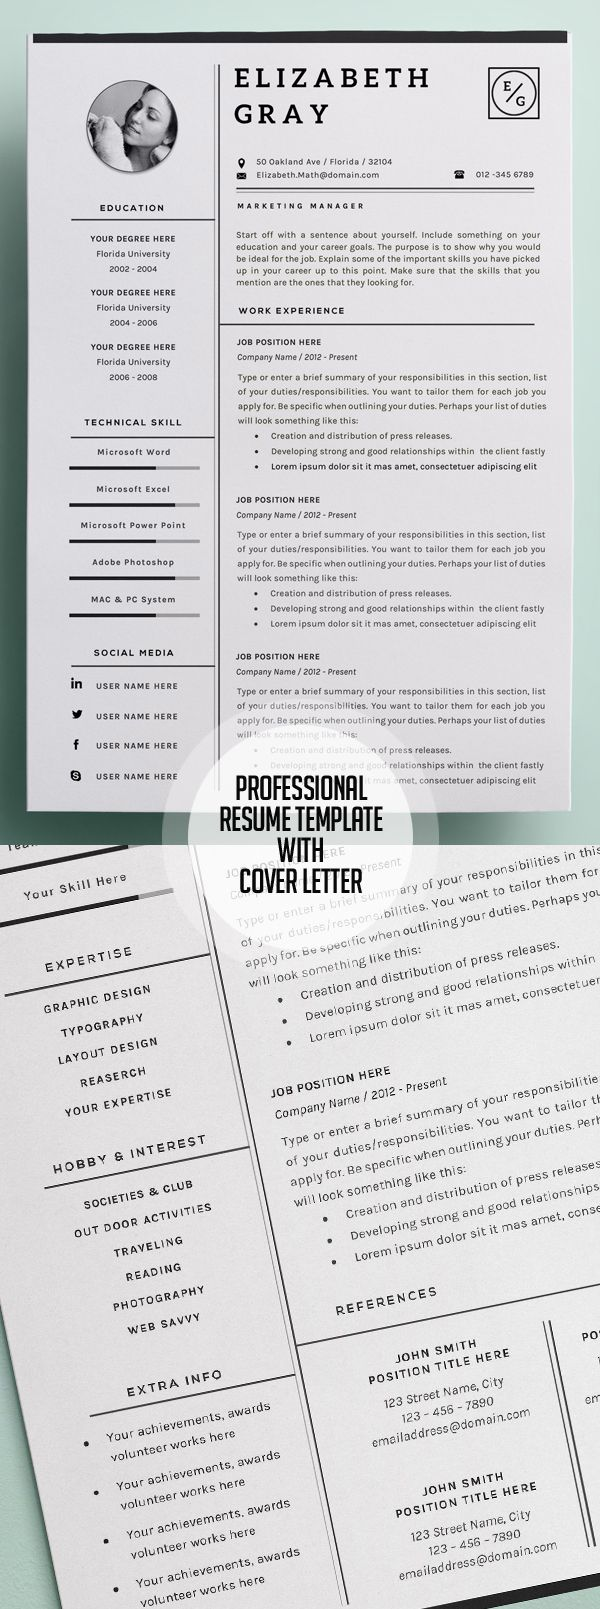 Opposenewapstandardsus  Ravishing  Resume Ideas On Pinterest  Resume Resume Templates And  With Excellent Professional And Modern Resume Template With Page Cover Cvtemplate With Cool National Honor Society Resume Also Adding Volunteer Work To Resume In Addition Entry Level Programmer Resume And Hobbies And Interests For Resume As Well As Examples Of Skills To Put On Resume Additionally Upload A Resume From Pinterestcom With Opposenewapstandardsus  Excellent  Resume Ideas On Pinterest  Resume Resume Templates And  With Cool Professional And Modern Resume Template With Page Cover Cvtemplate And Ravishing National Honor Society Resume Also Adding Volunteer Work To Resume In Addition Entry Level Programmer Resume From Pinterestcom